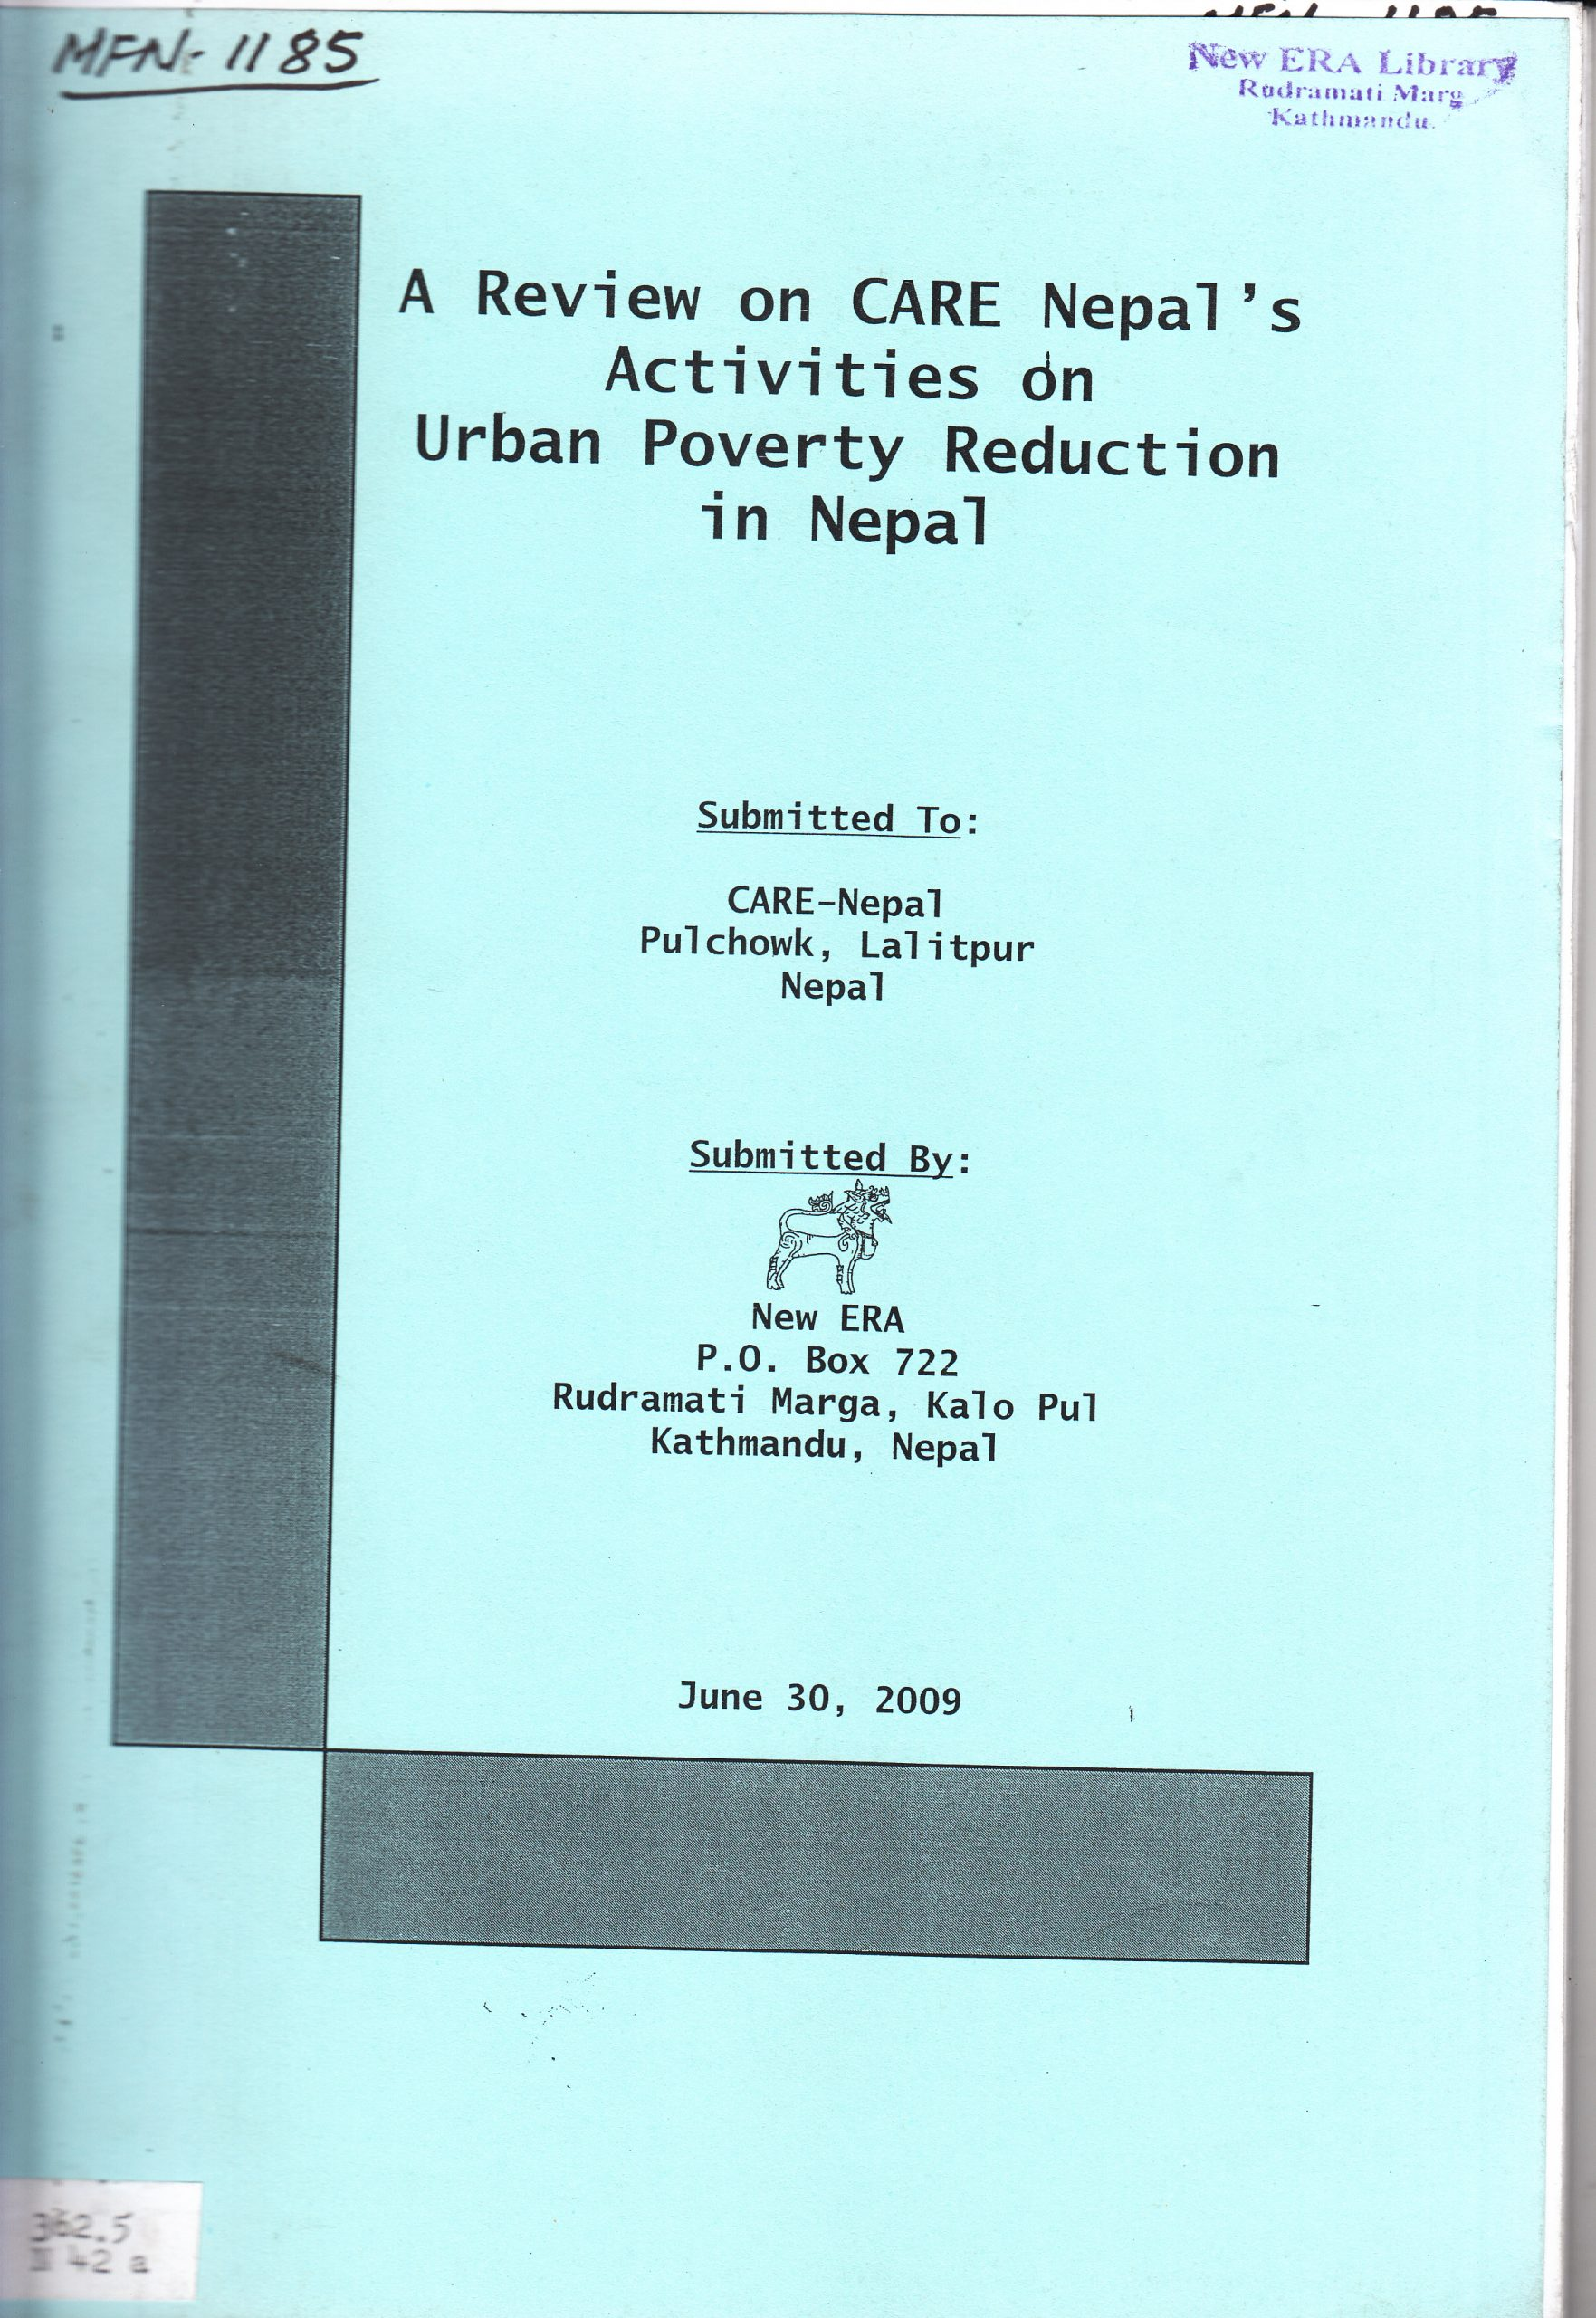 A Review on CARE Nepal's Activities on Urban Poverty Reduction in Nepal